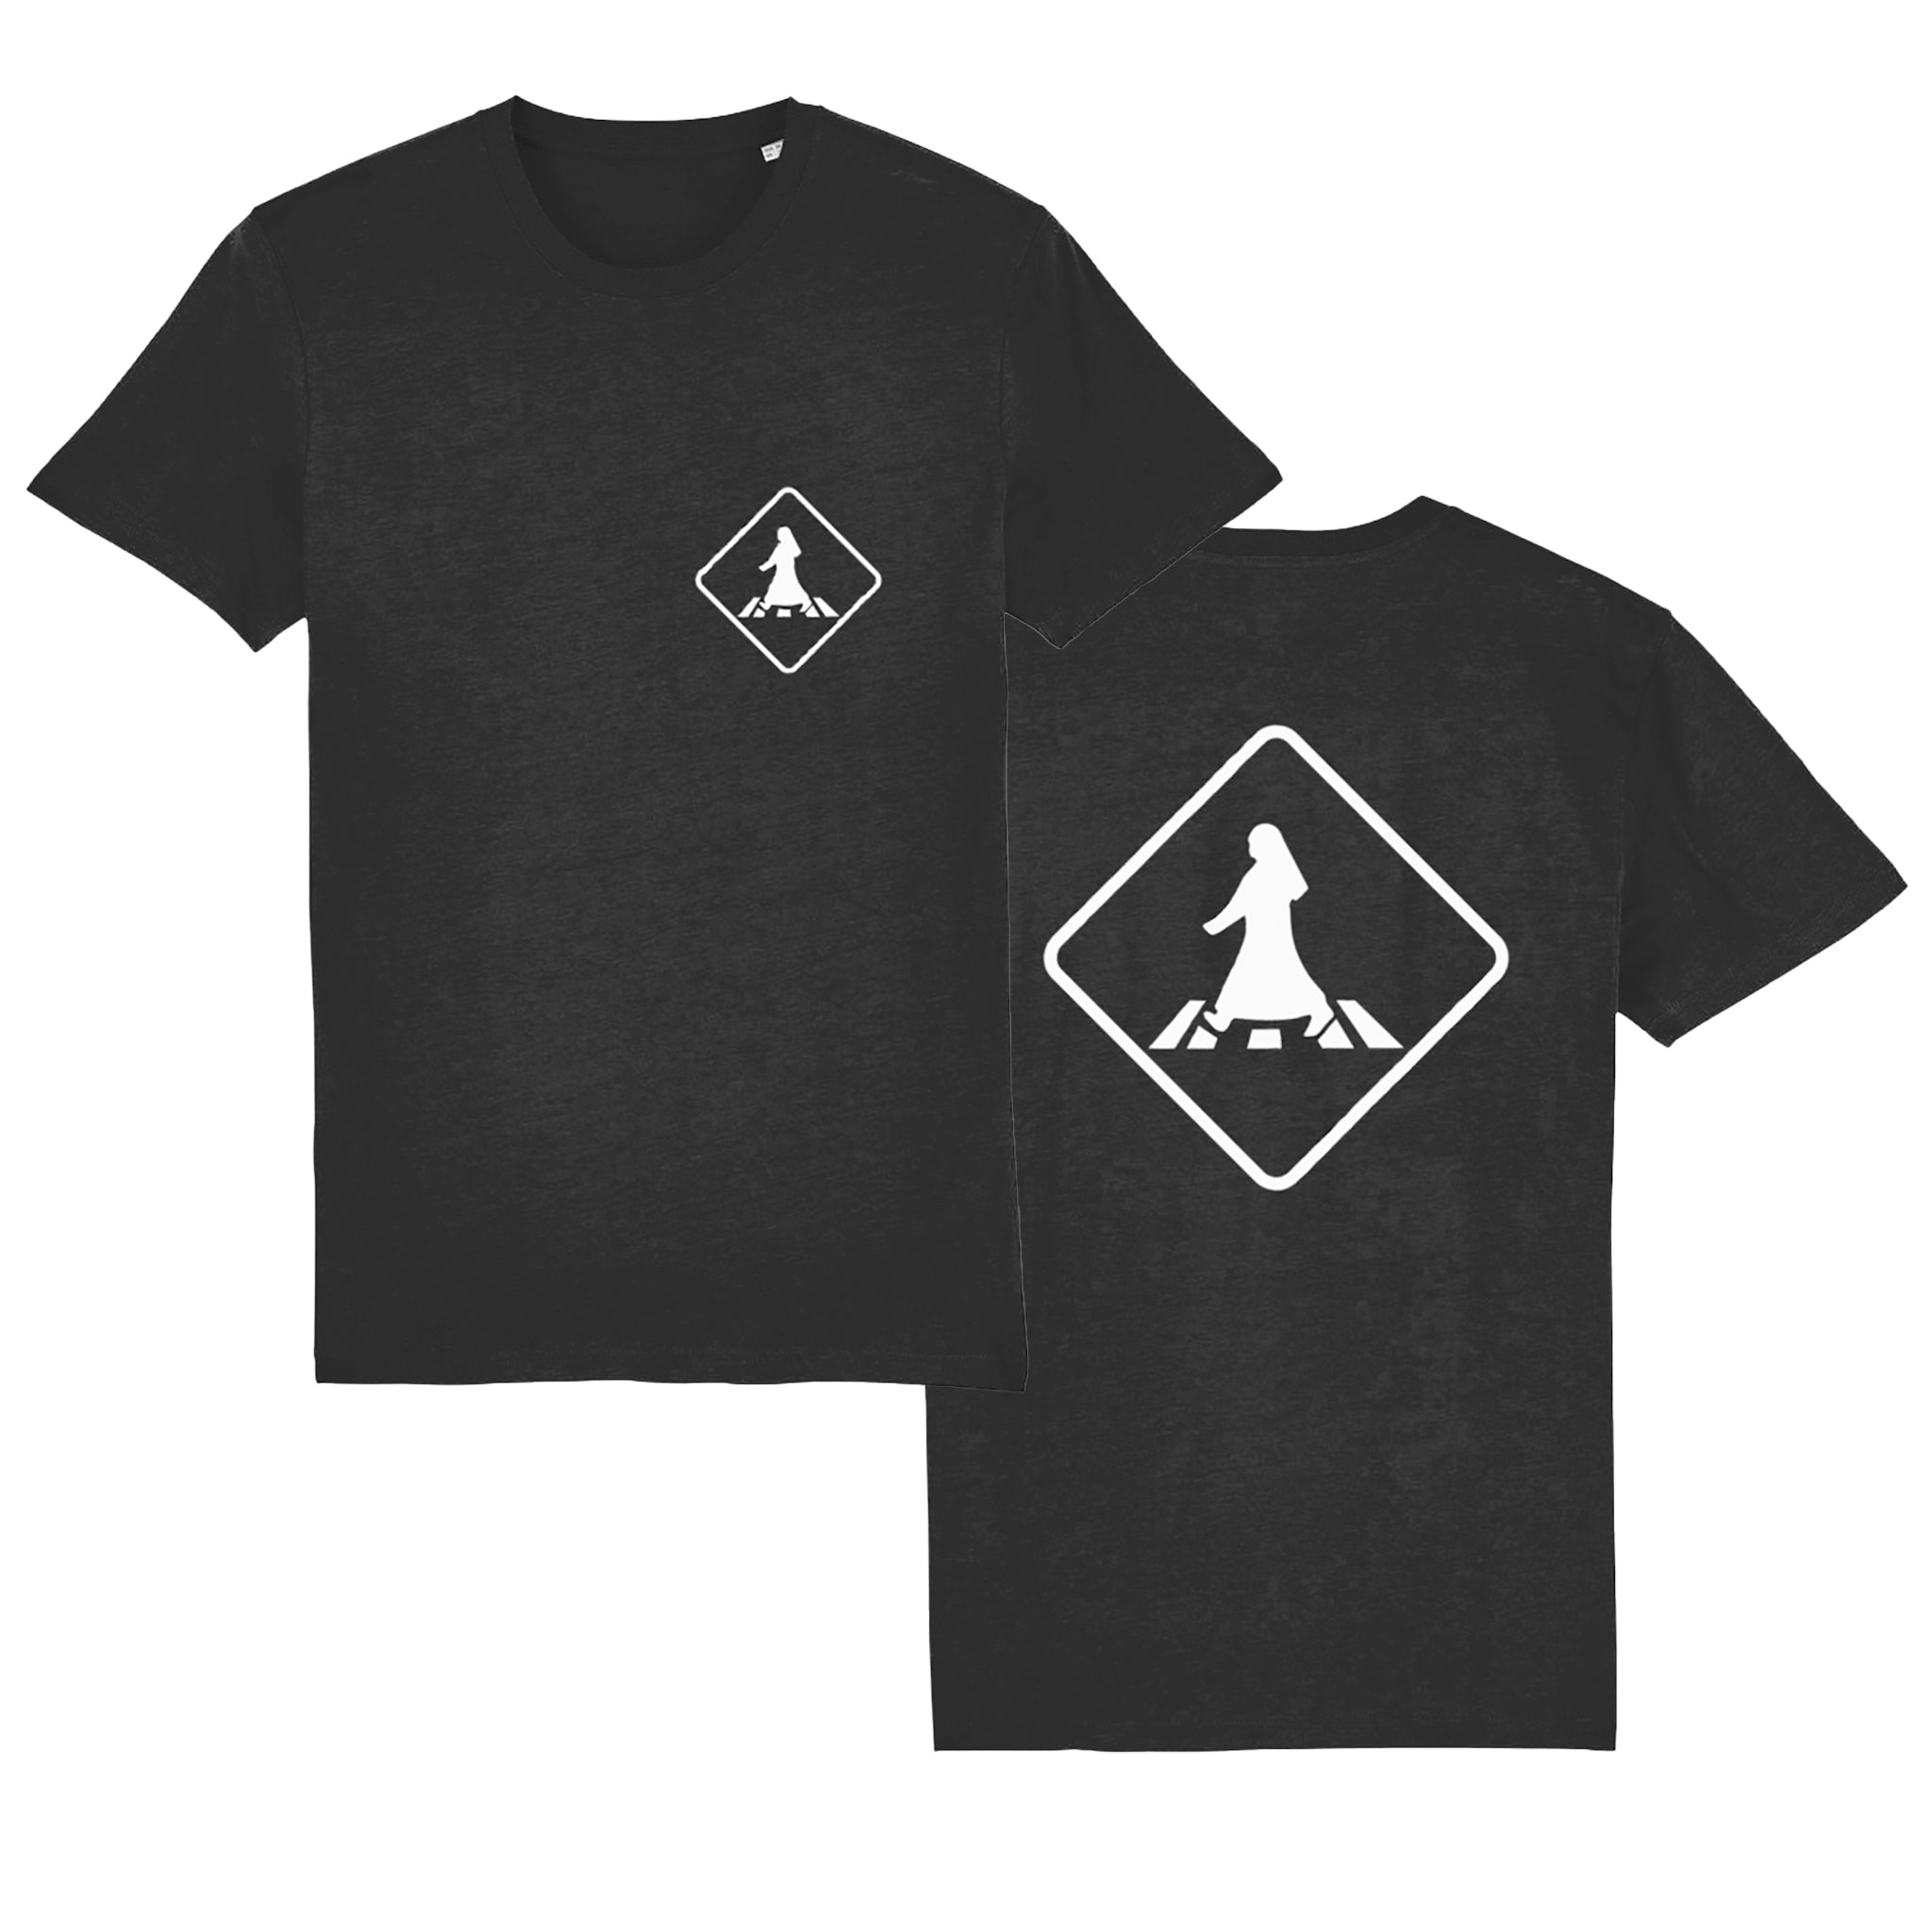 Pedestrian Crossing Unisex T-shirt front and back view in black